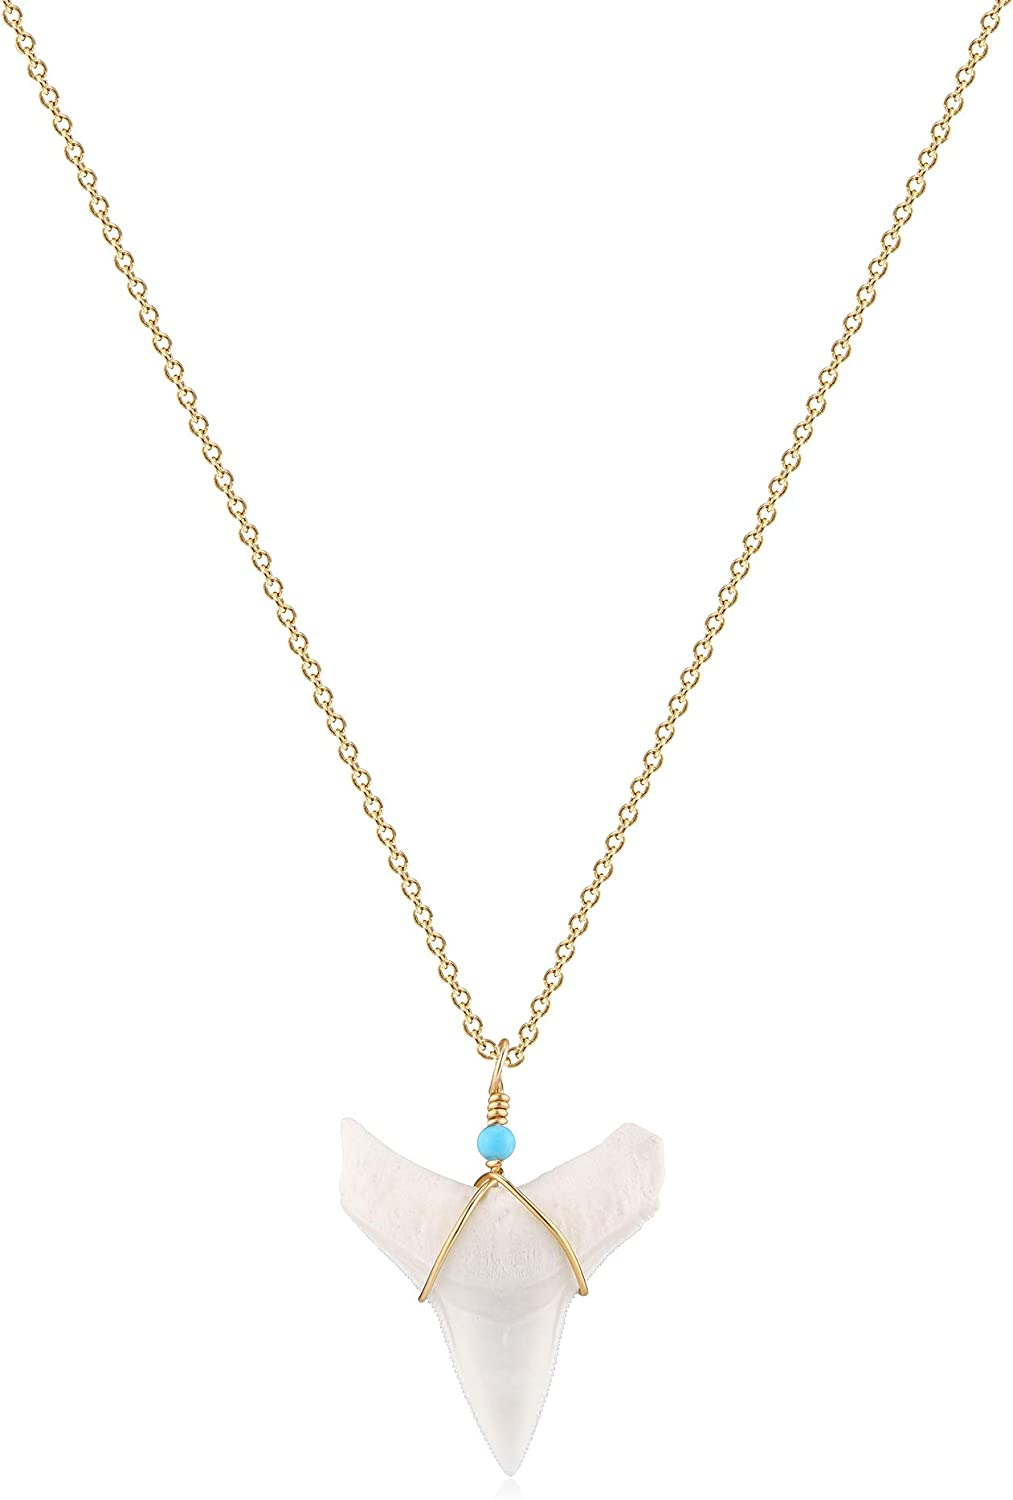 Mevecco Gold Dainty Necklace,14K Gold Plated Cute Horizontal Hammered Cubic Zirconia Evil Eye Heart Necklace for Women